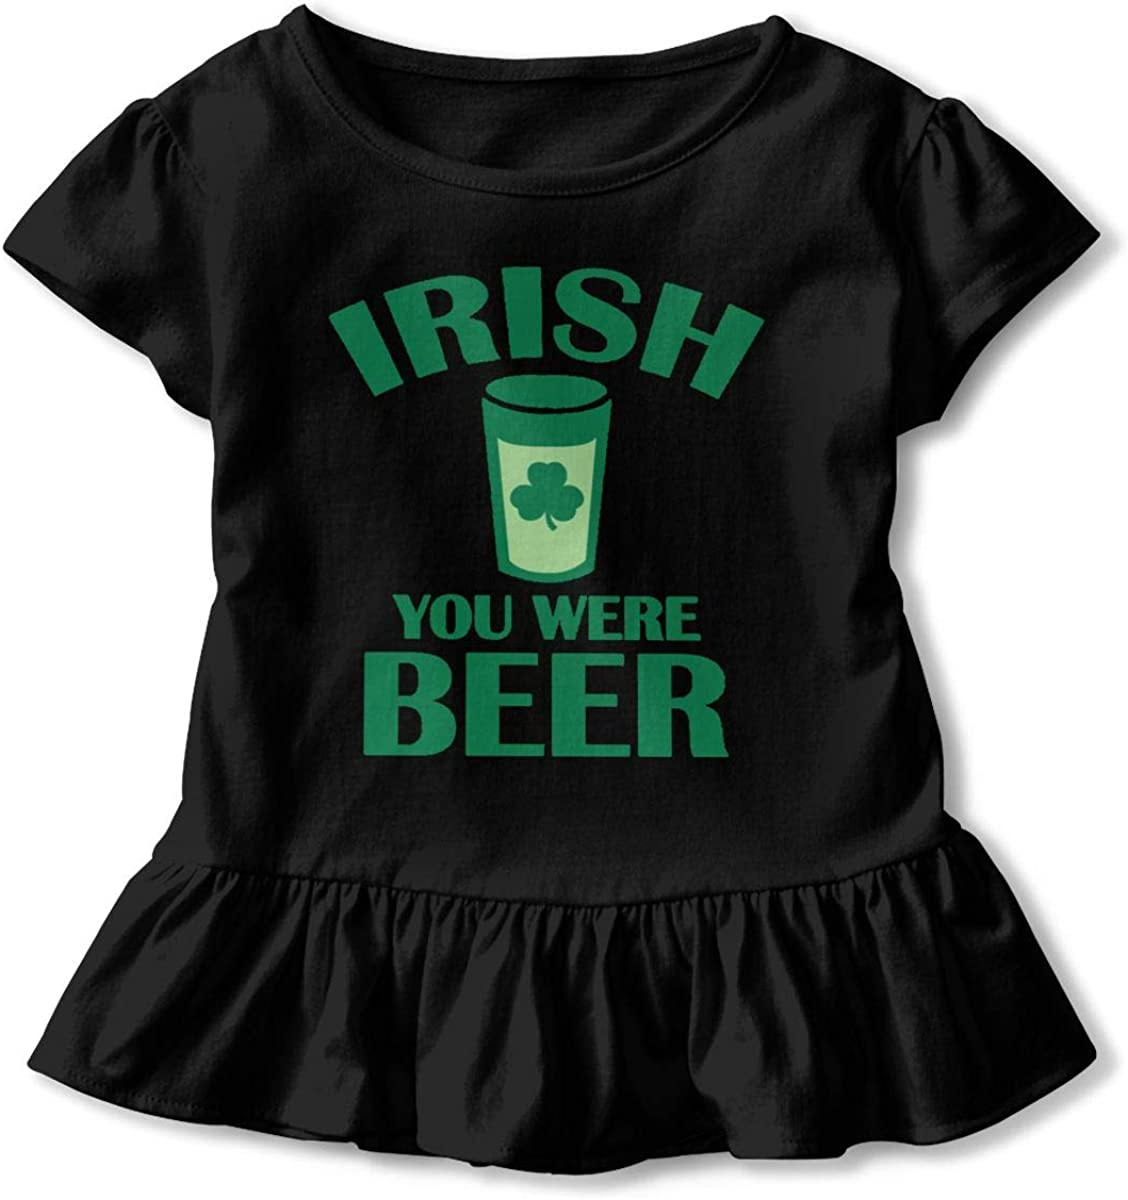 Not Available Irish You were Beer Shirt Baby Girls Ruffles Cute Tees for 2-6 Years Old Baby